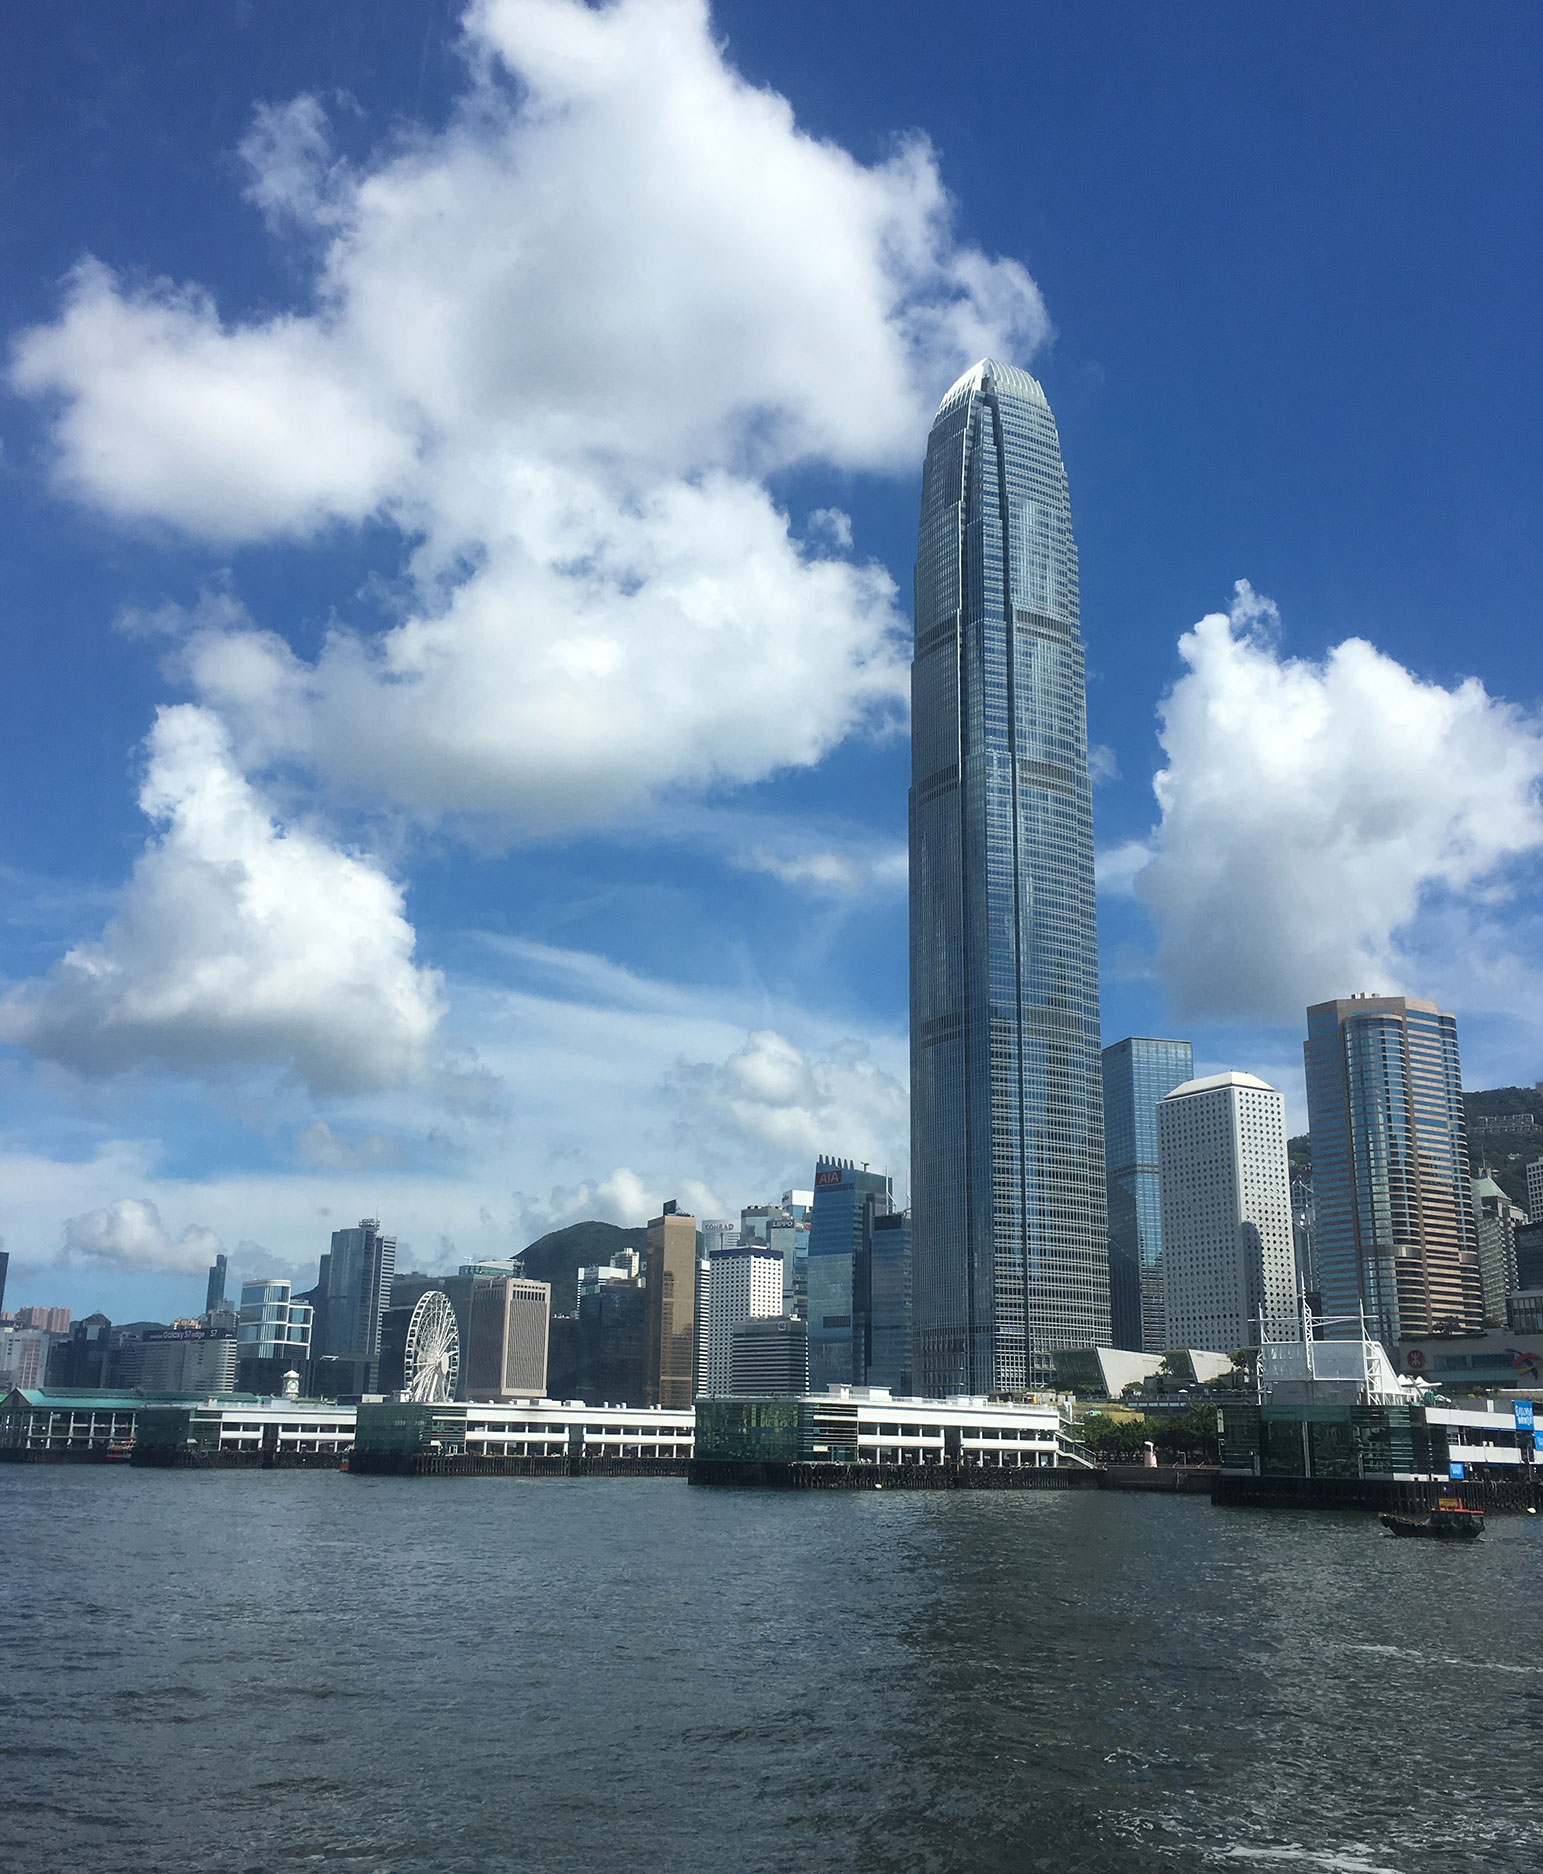 IFC 2 towers over Hong kong